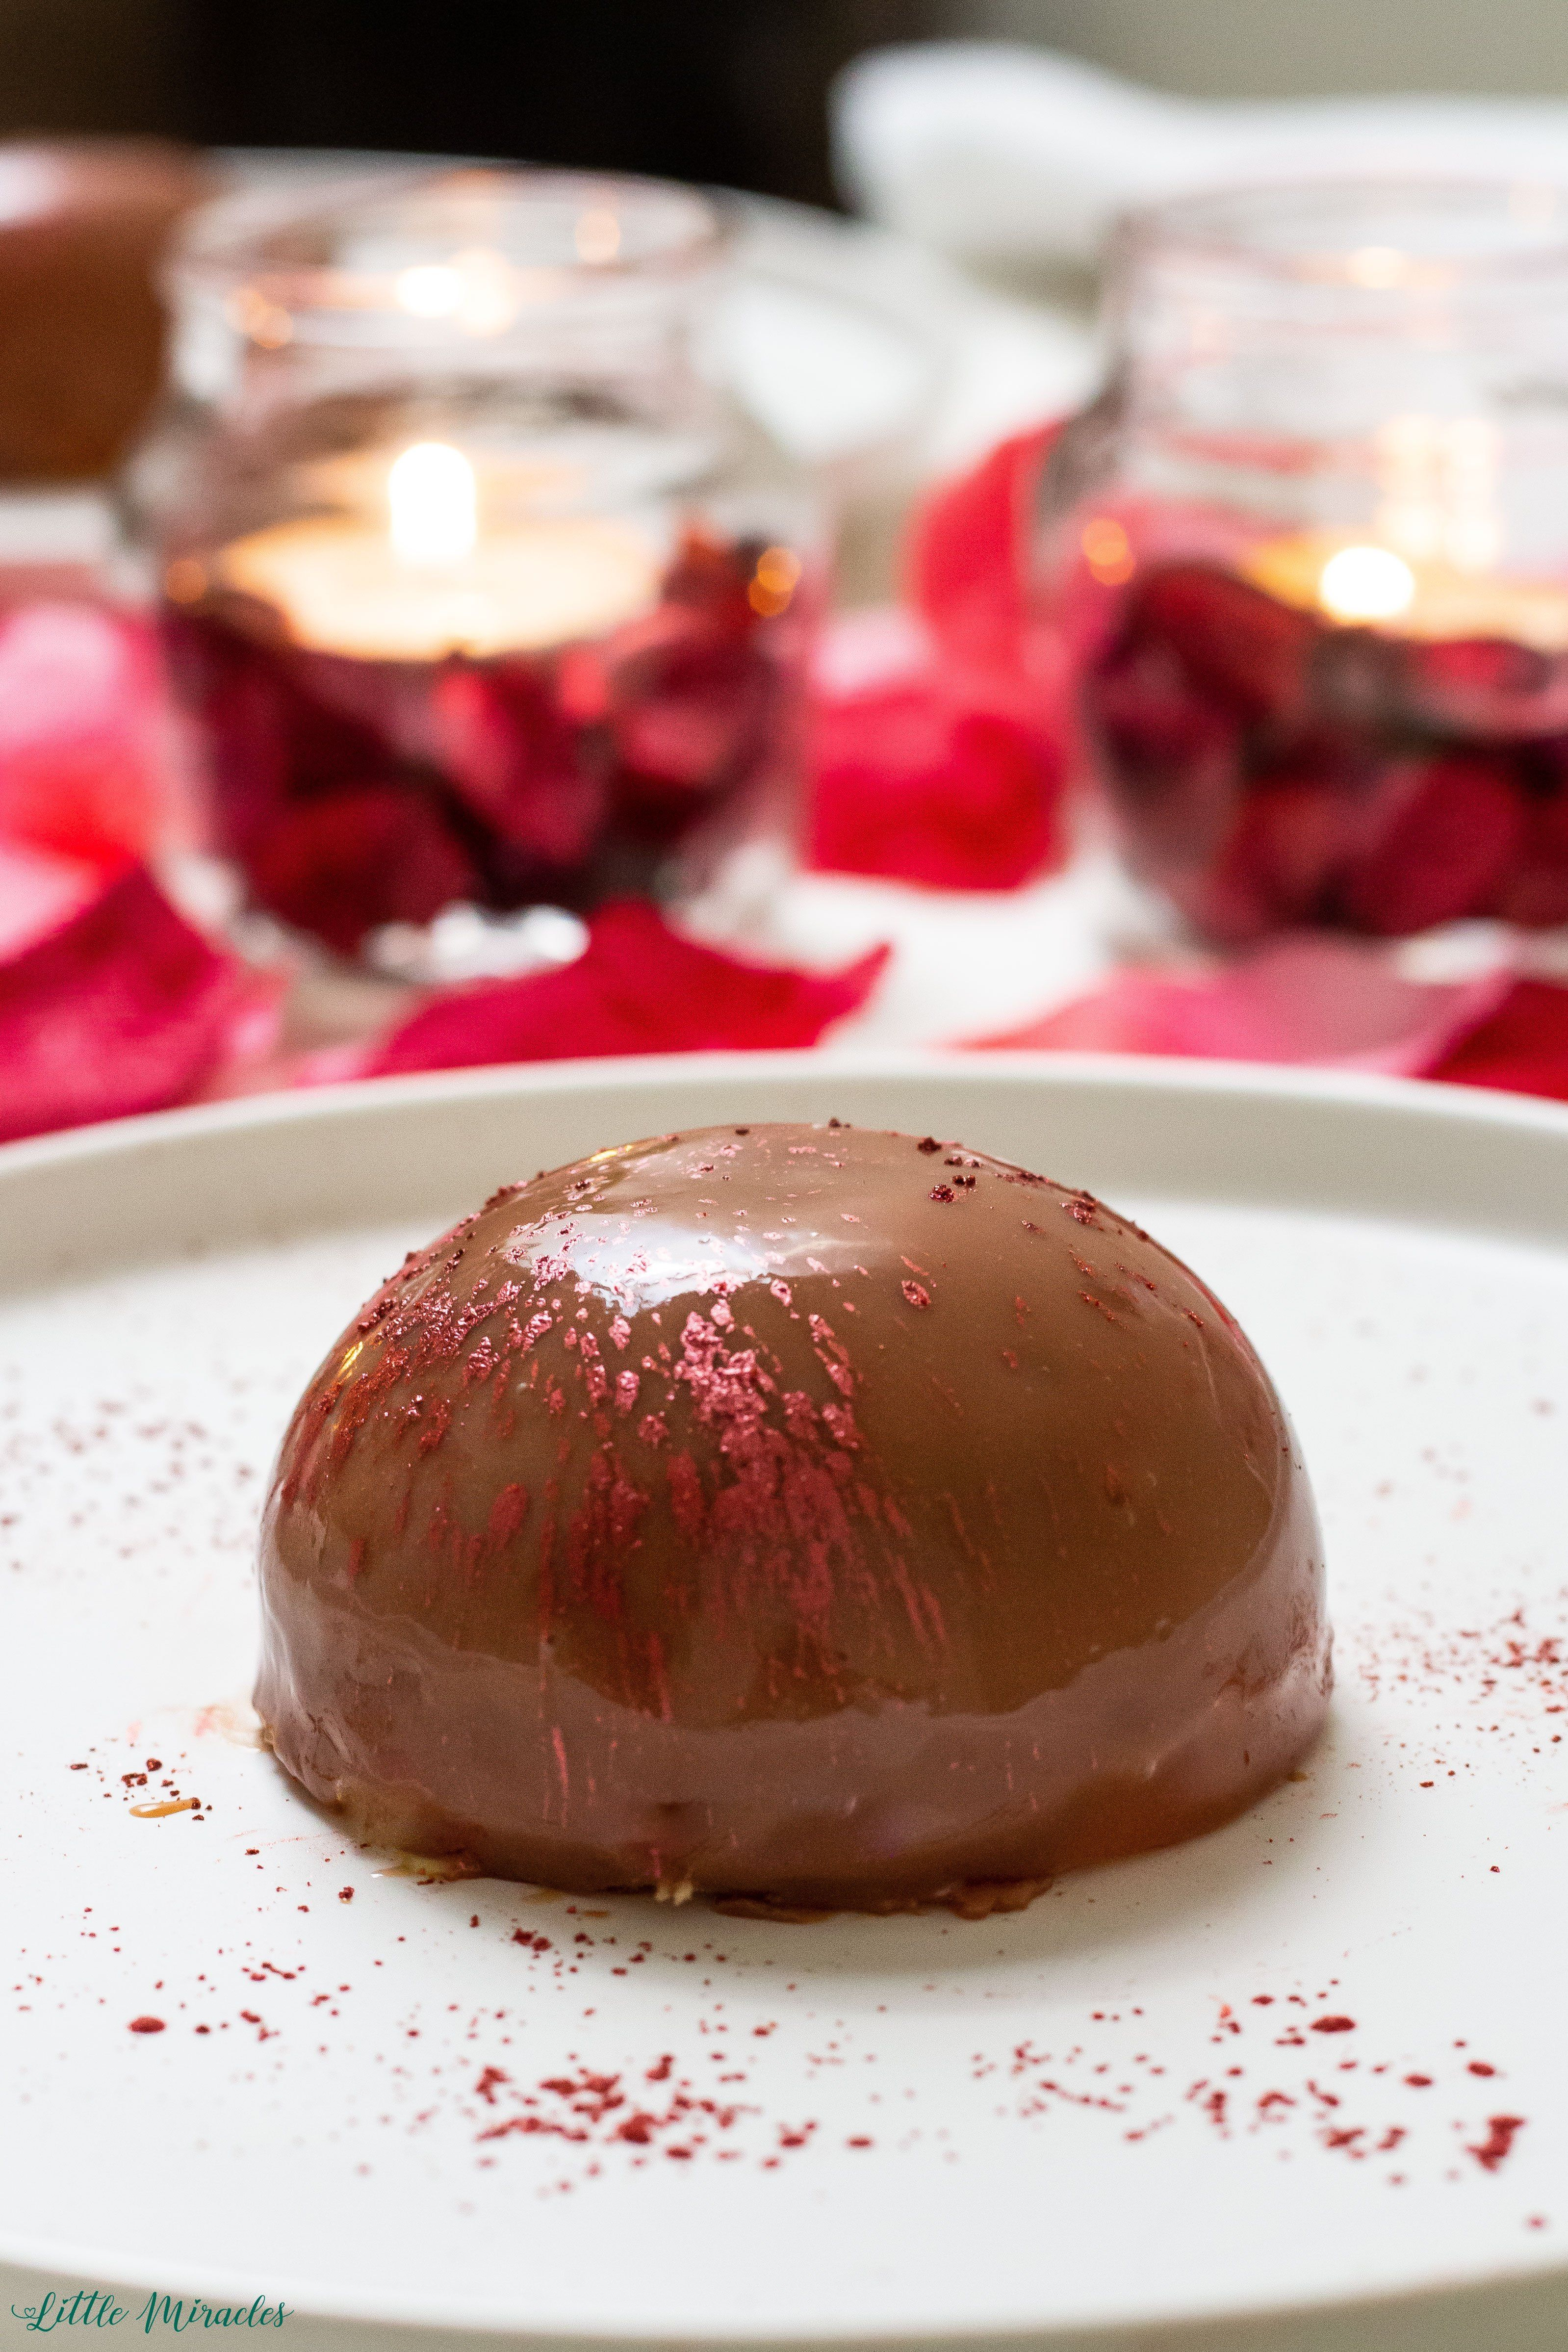 Chocolate Mousse with a Cherry Compote & Hazelnut Crumb Silky Chocolate Mousse stuffed with a tart Cherry Compote with a Hazelnut Crumb base and finished with a Milk Chocolate Mirror Glaze.